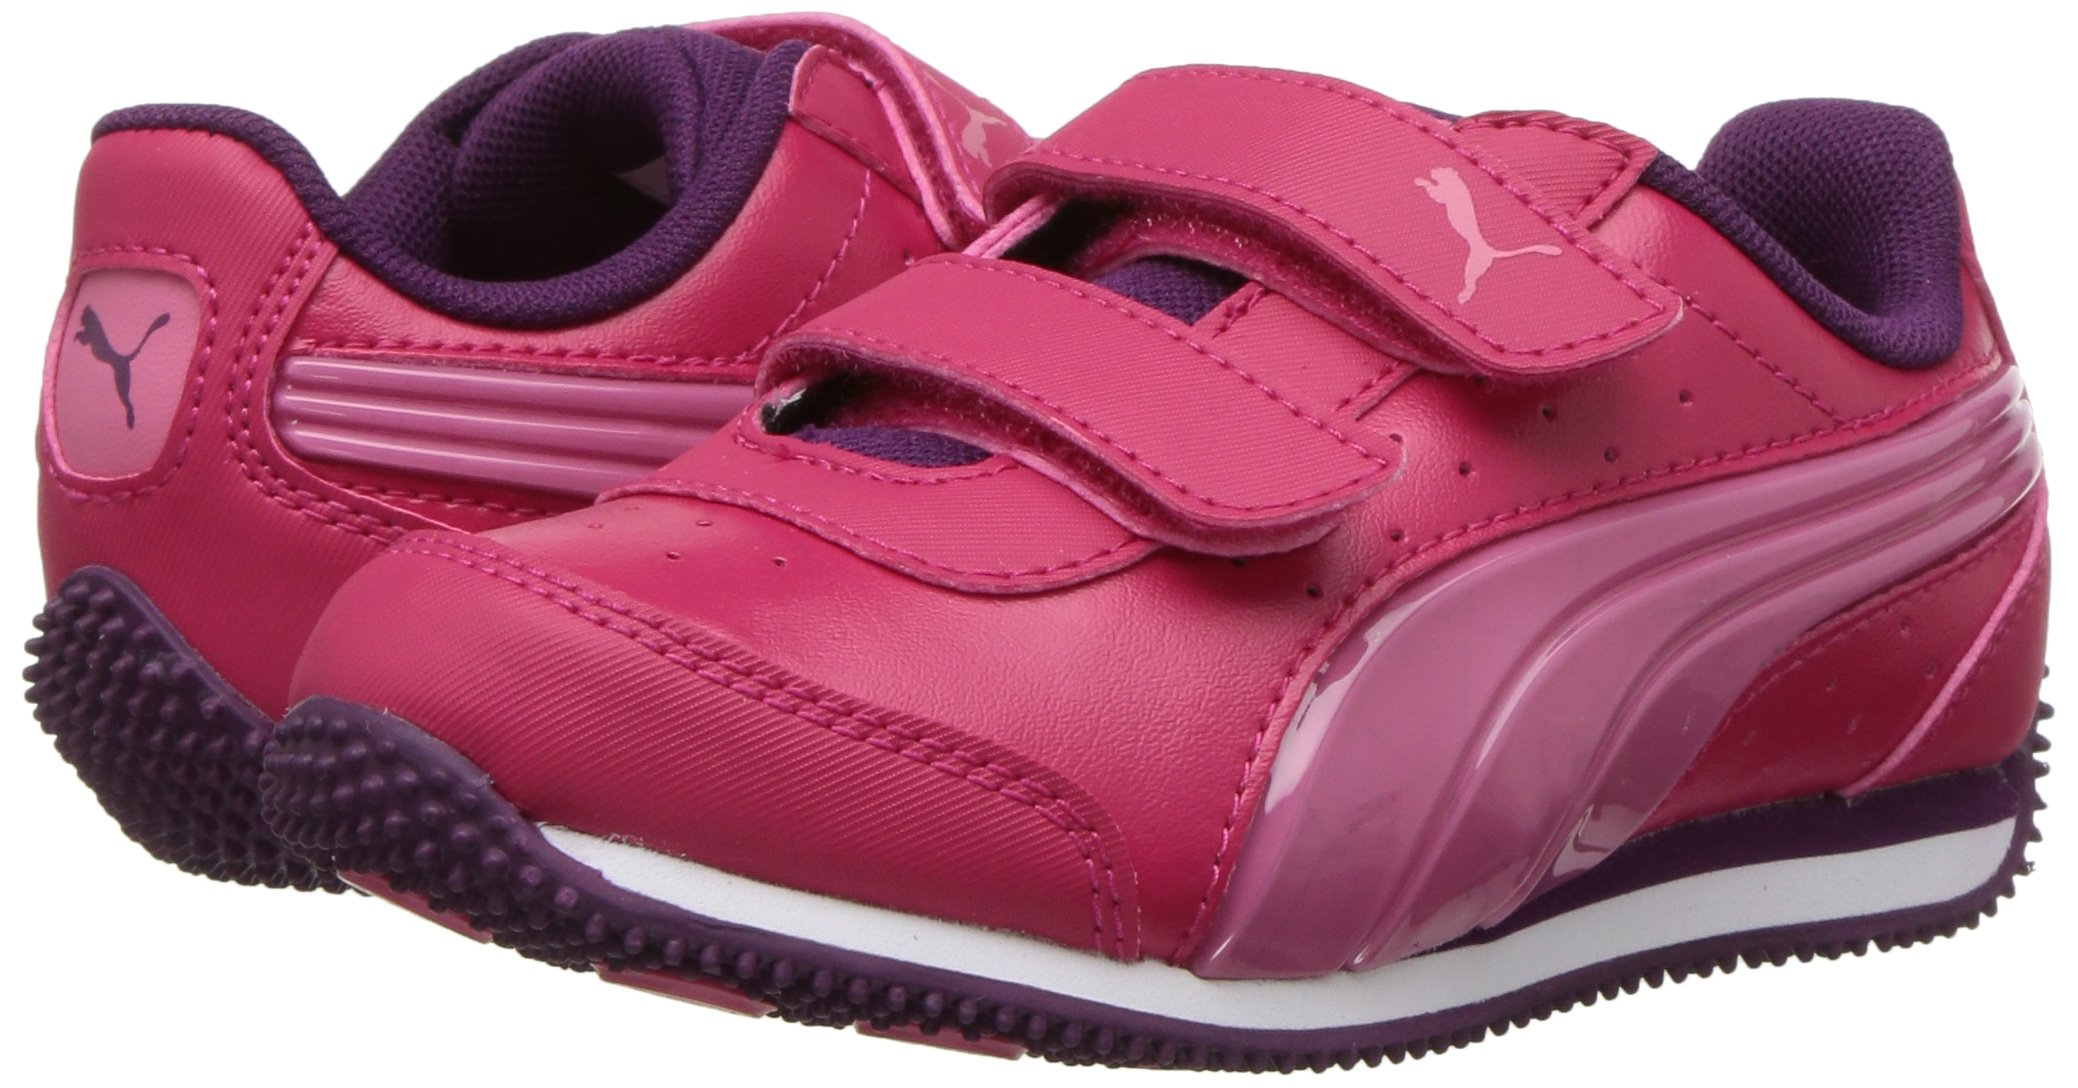 PUMA Baby Speed Lightup Power V Kids Sneaker, Love Potion-Rapture Rose, 5 M US Toddler by PUMA (Image #6)